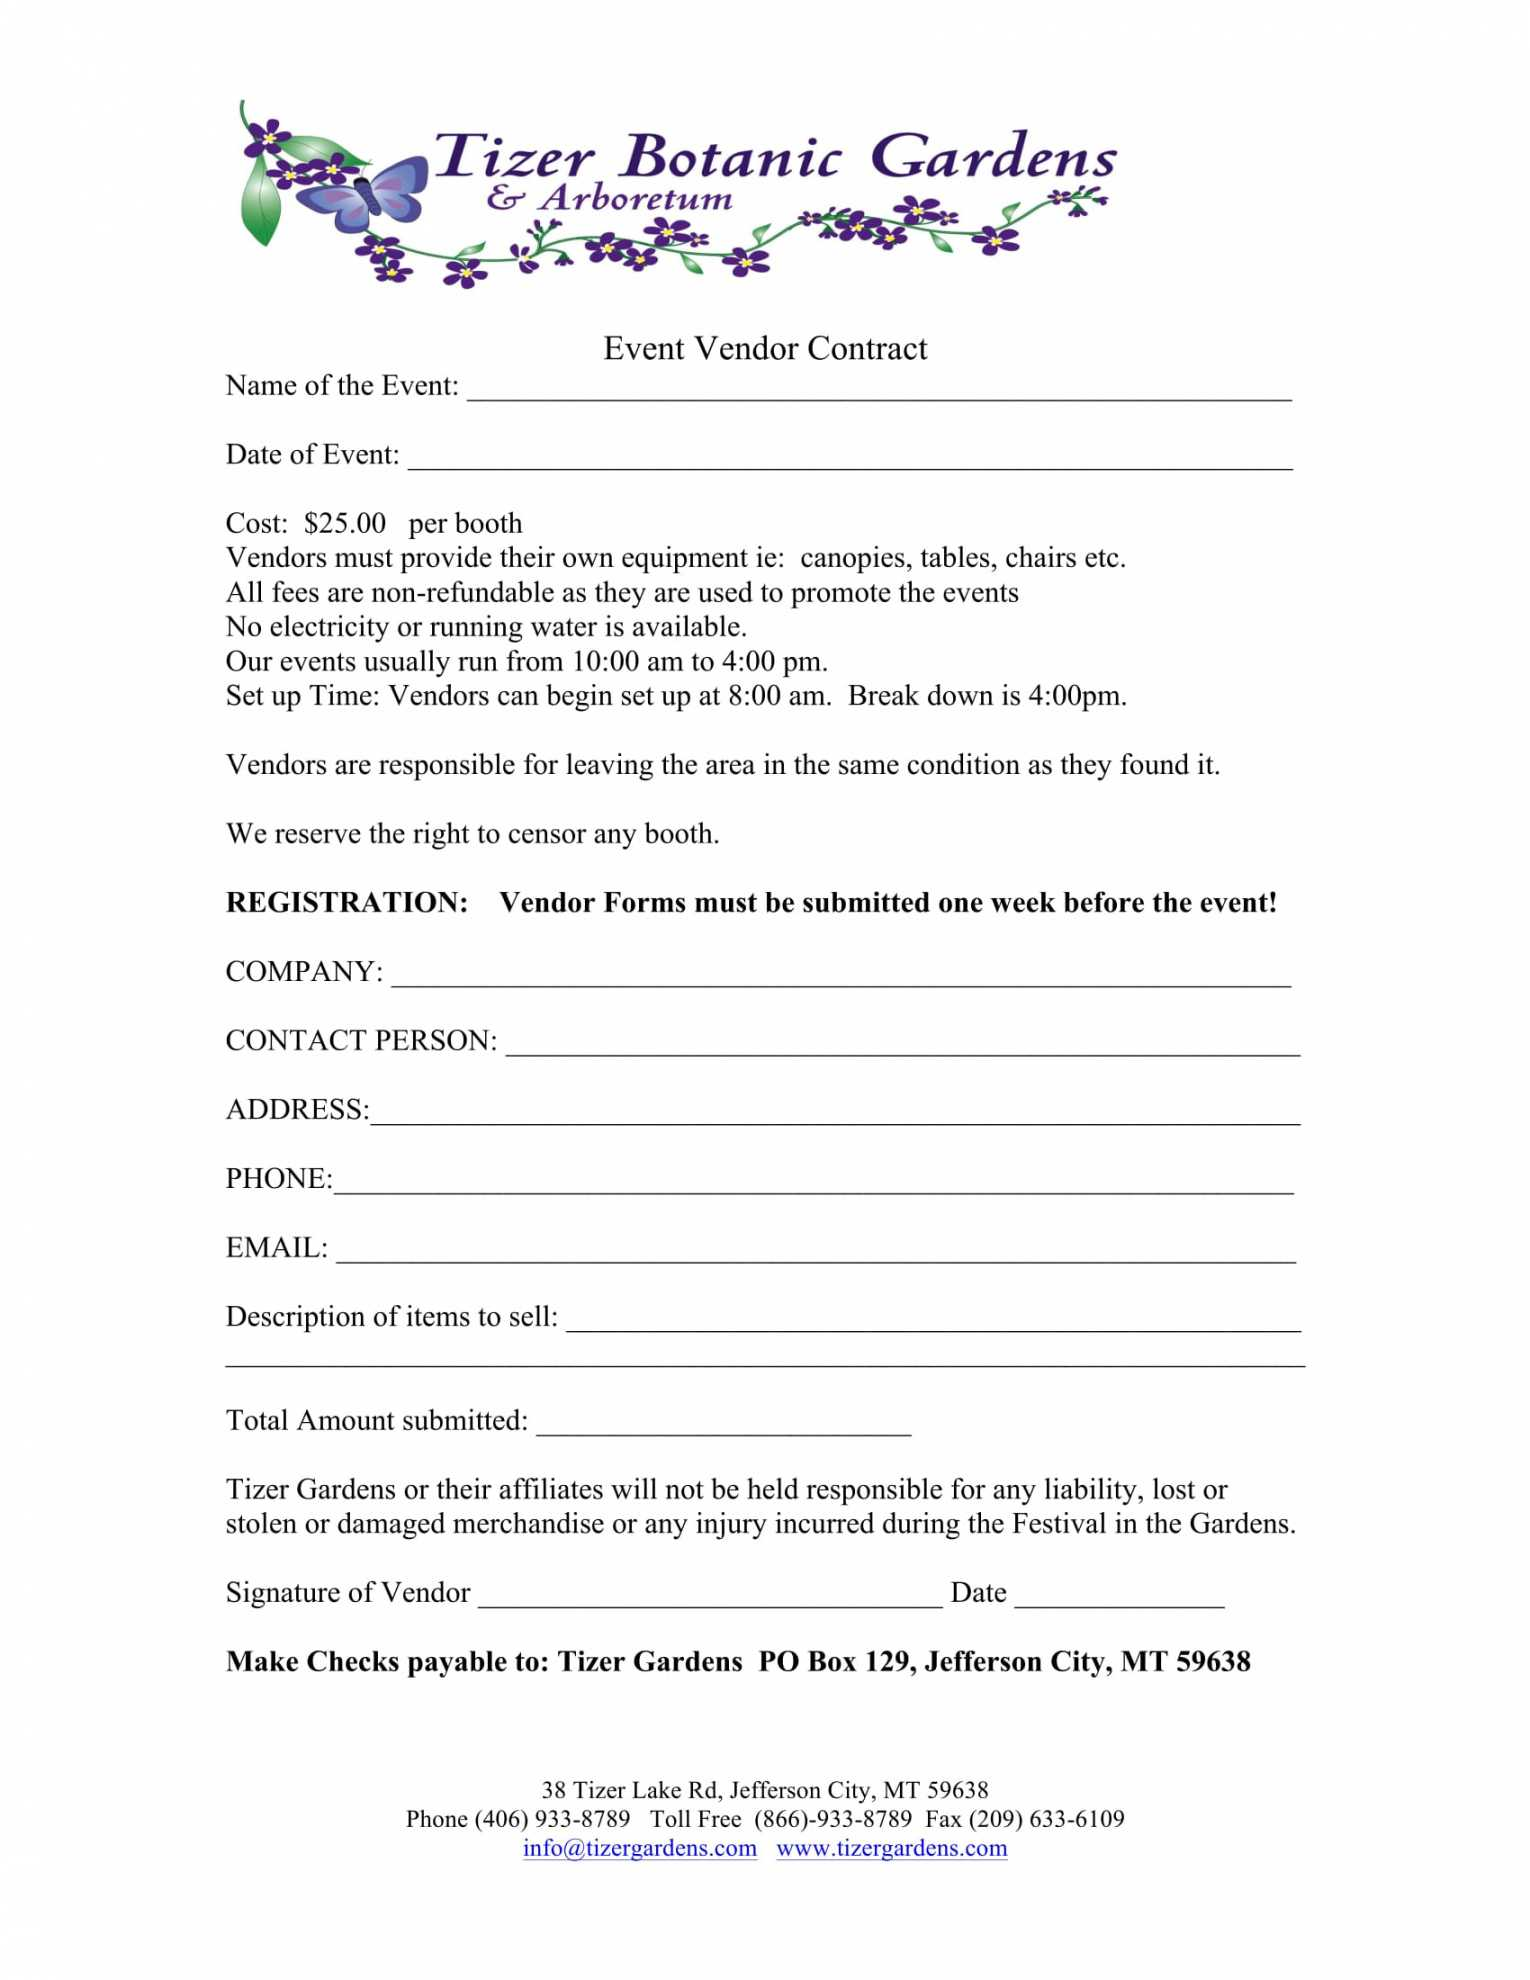 025 Printable Event Vendor Registration Form Free Word Pdf Within Event Vendor Application Template